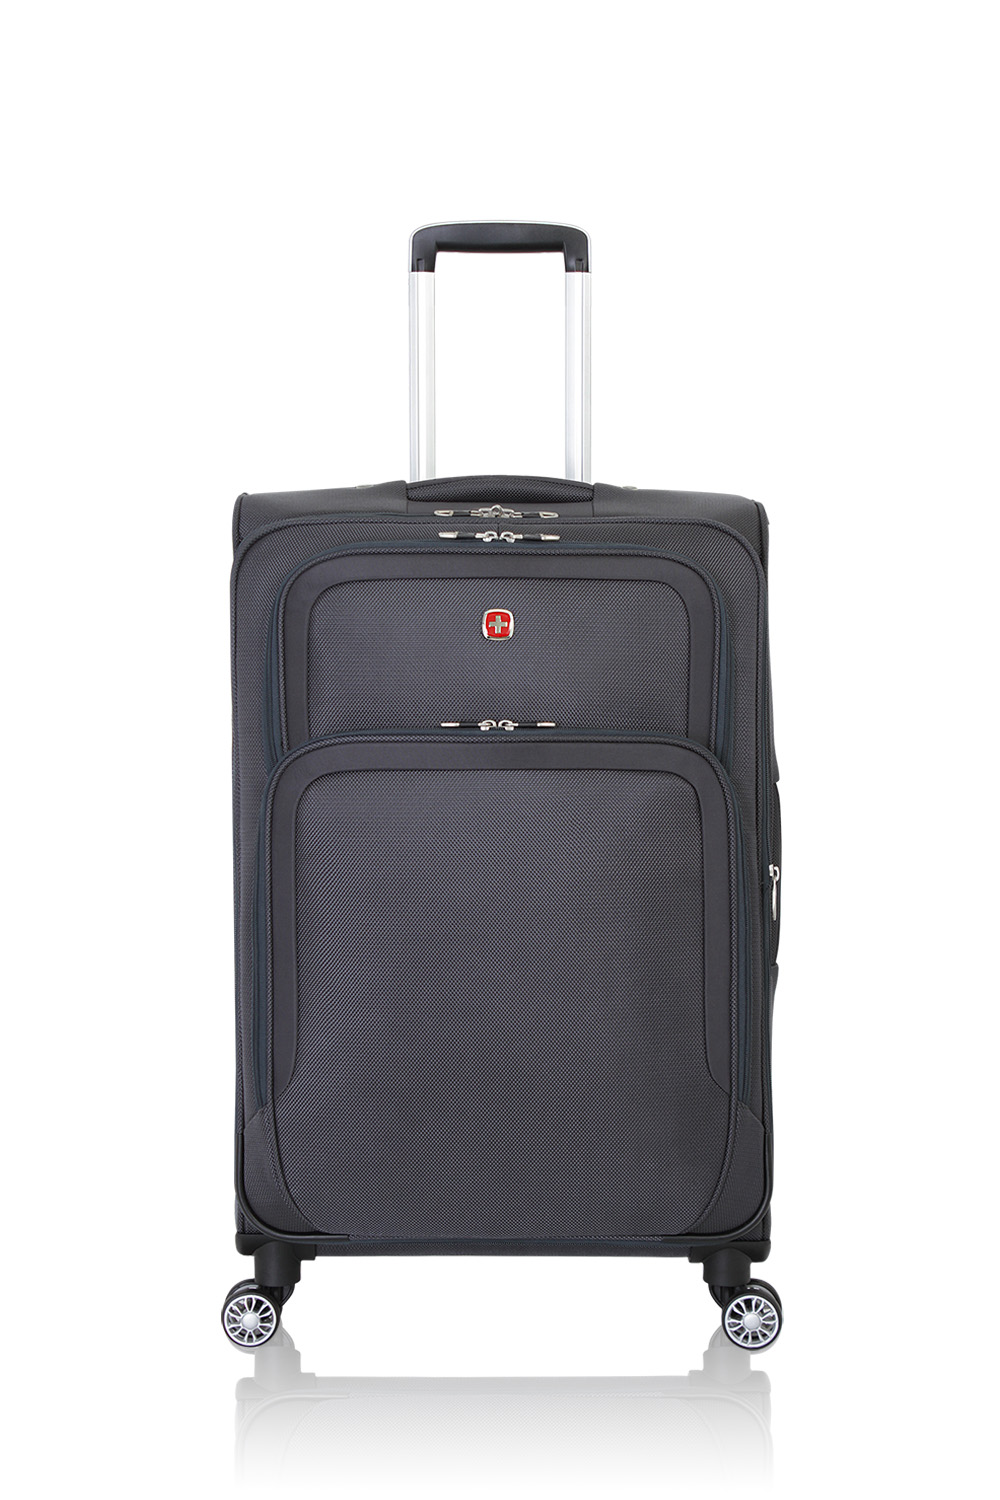 "SWISSGEAR 6281 24"" Expandable Deluxe - Grey Luggage"